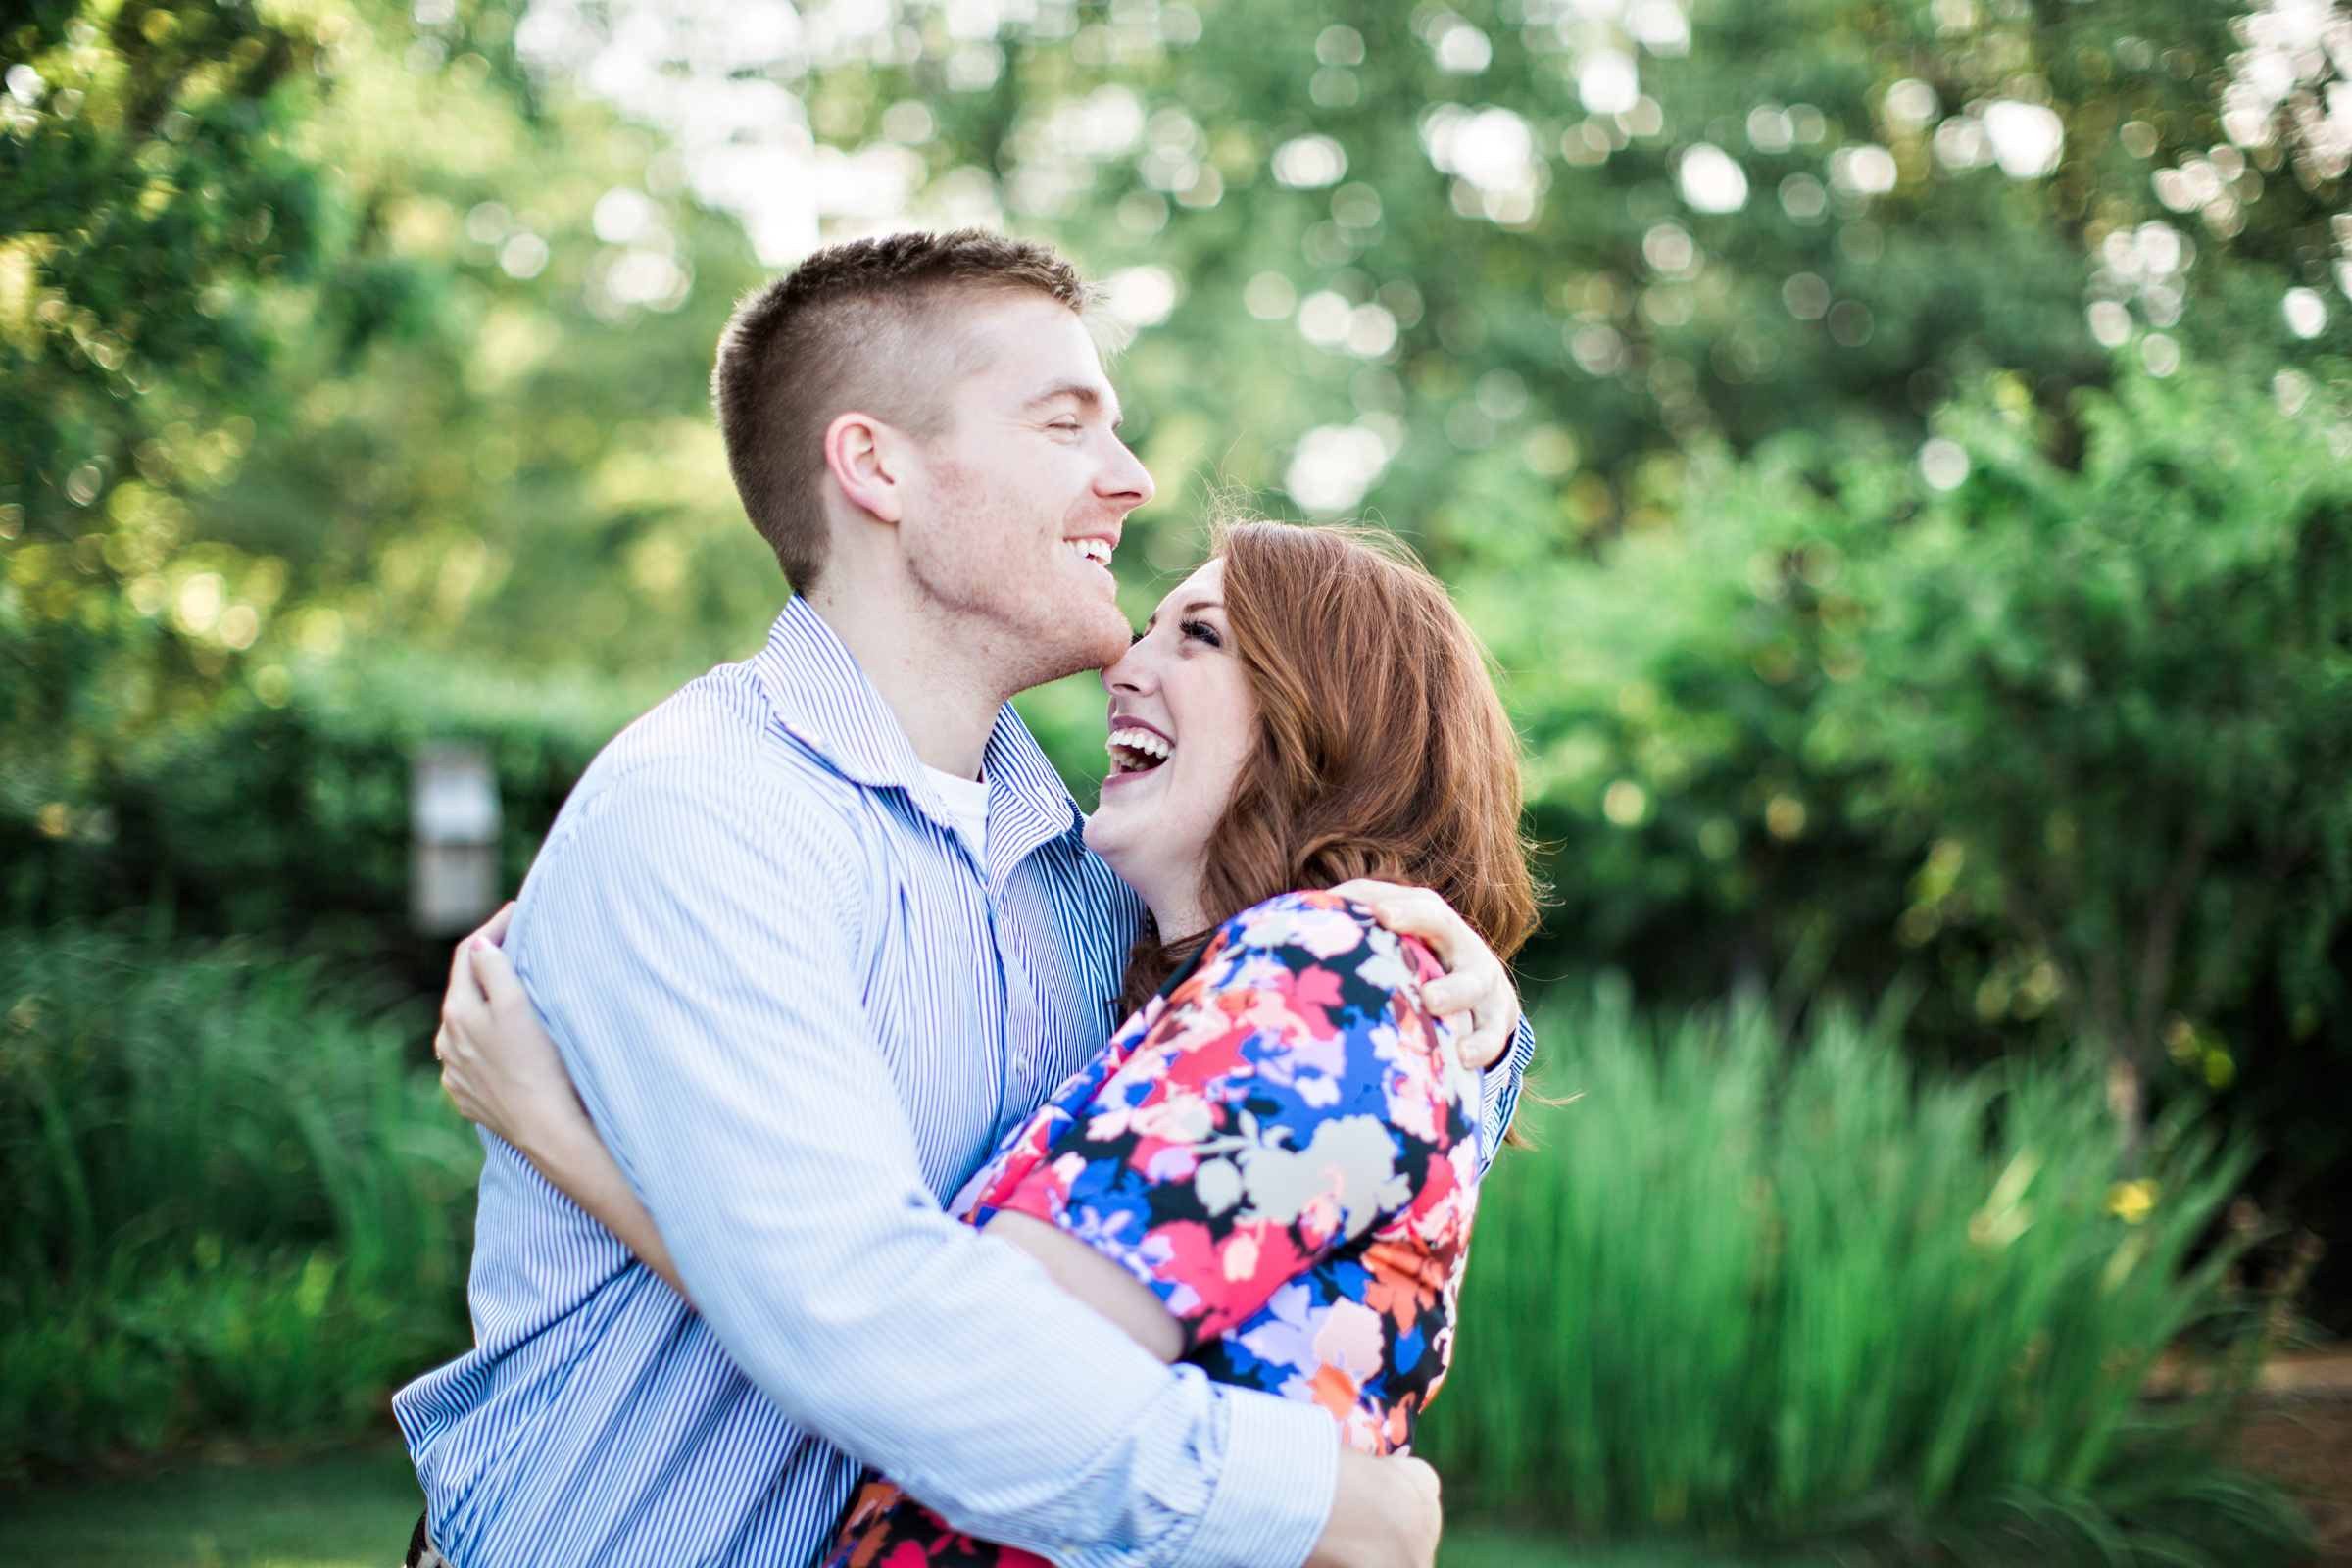 Nick-Drollette-Photography-Alabama-Engagements-Birmingham-Shelby-Logan-125.jpg